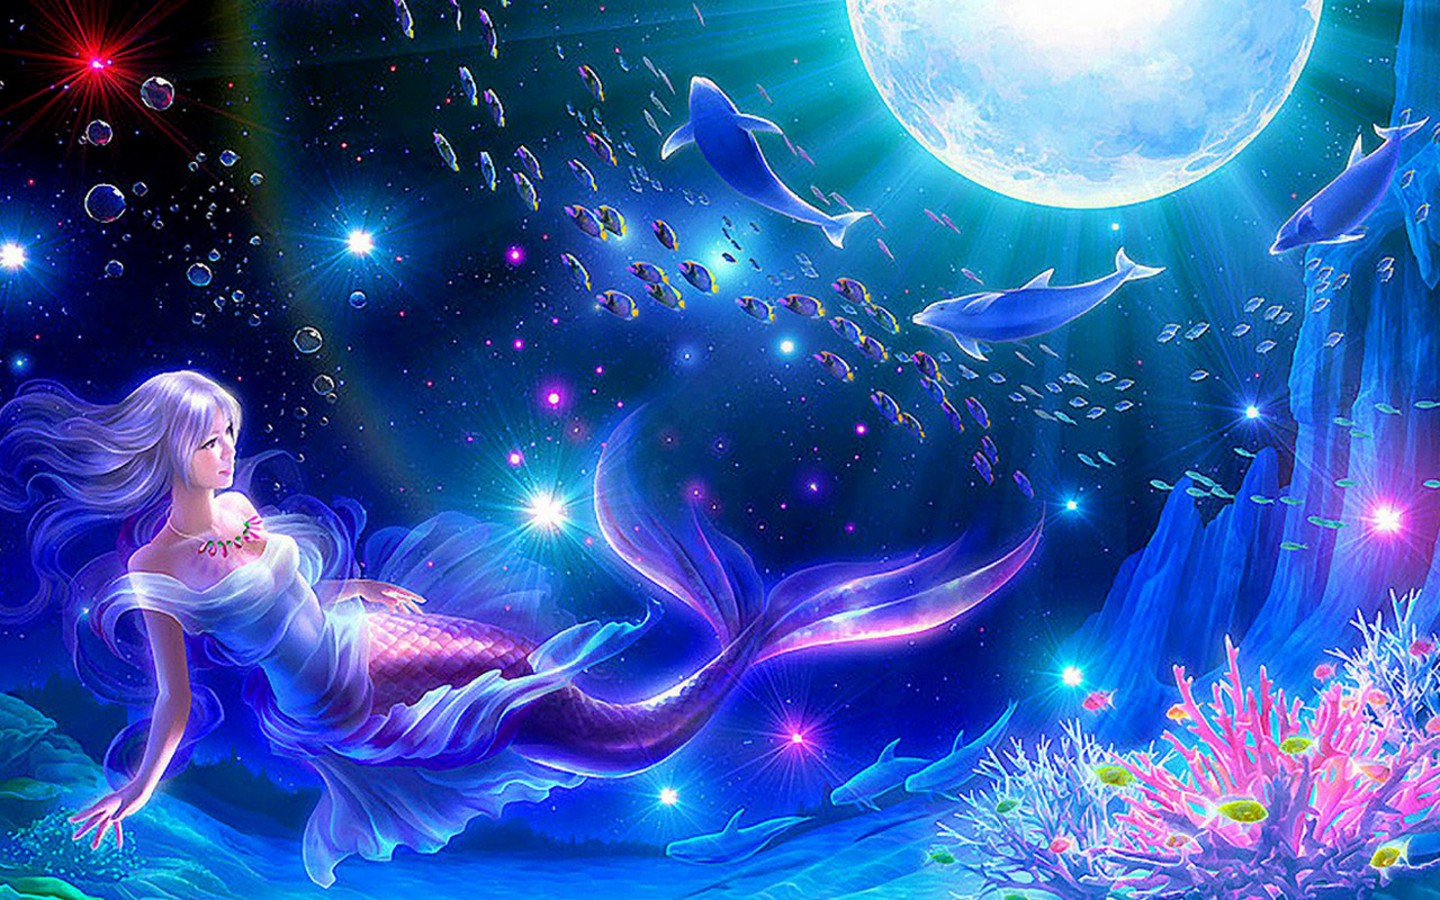 wallpapers women beauty photos new collection of fantasy wallpapers 1440x900